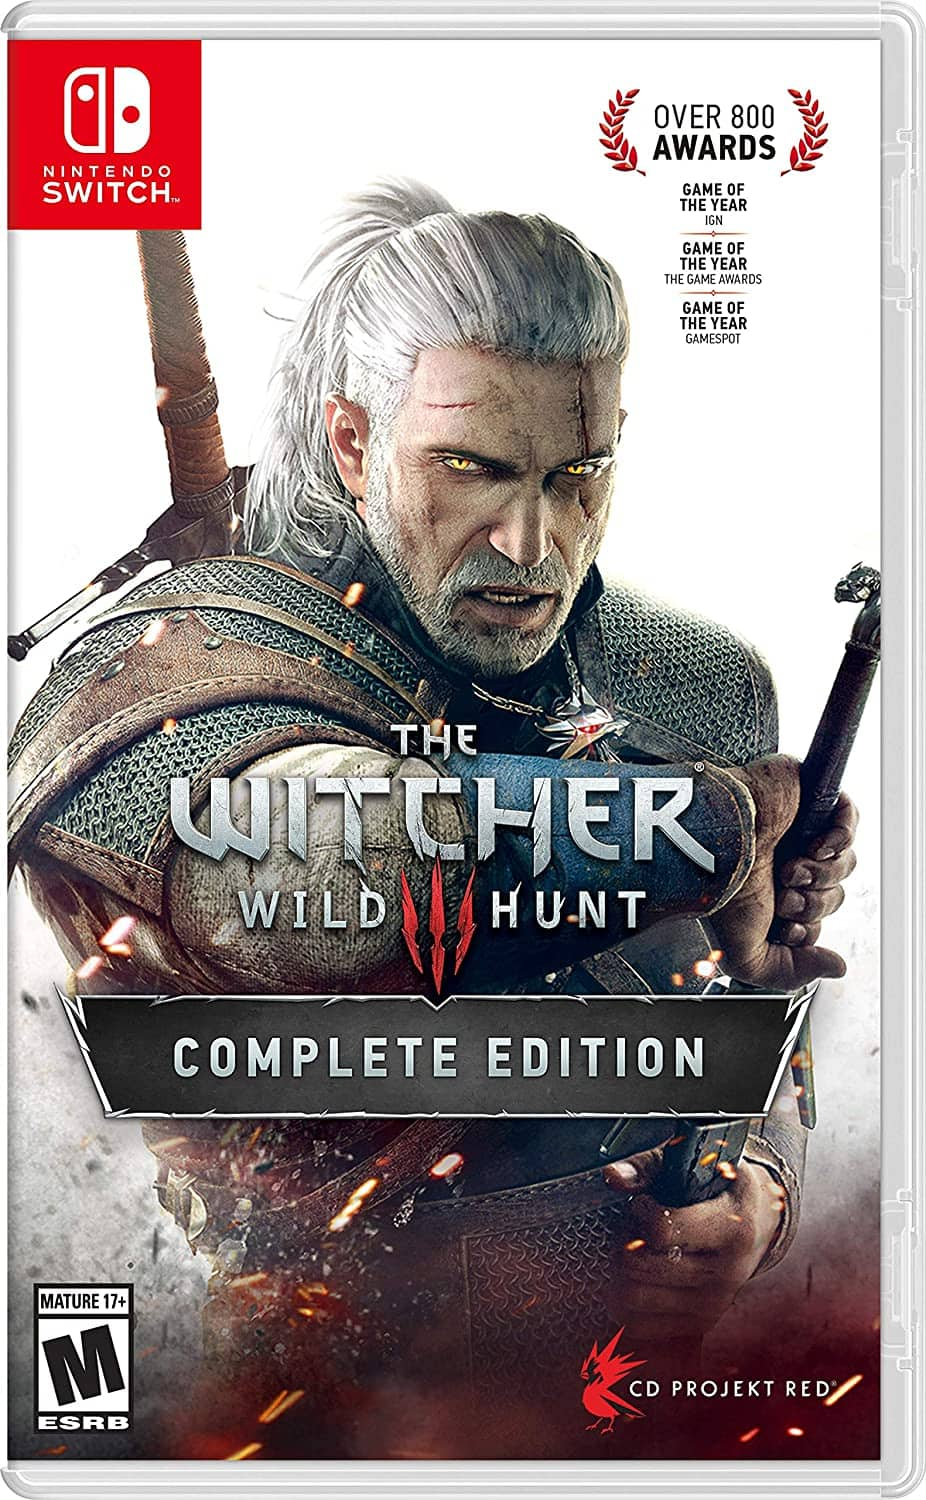 Witcher 3: Wild Hunt - Nintendo Switch - $44.99 @ Amazon, Best Buy, Gamestop